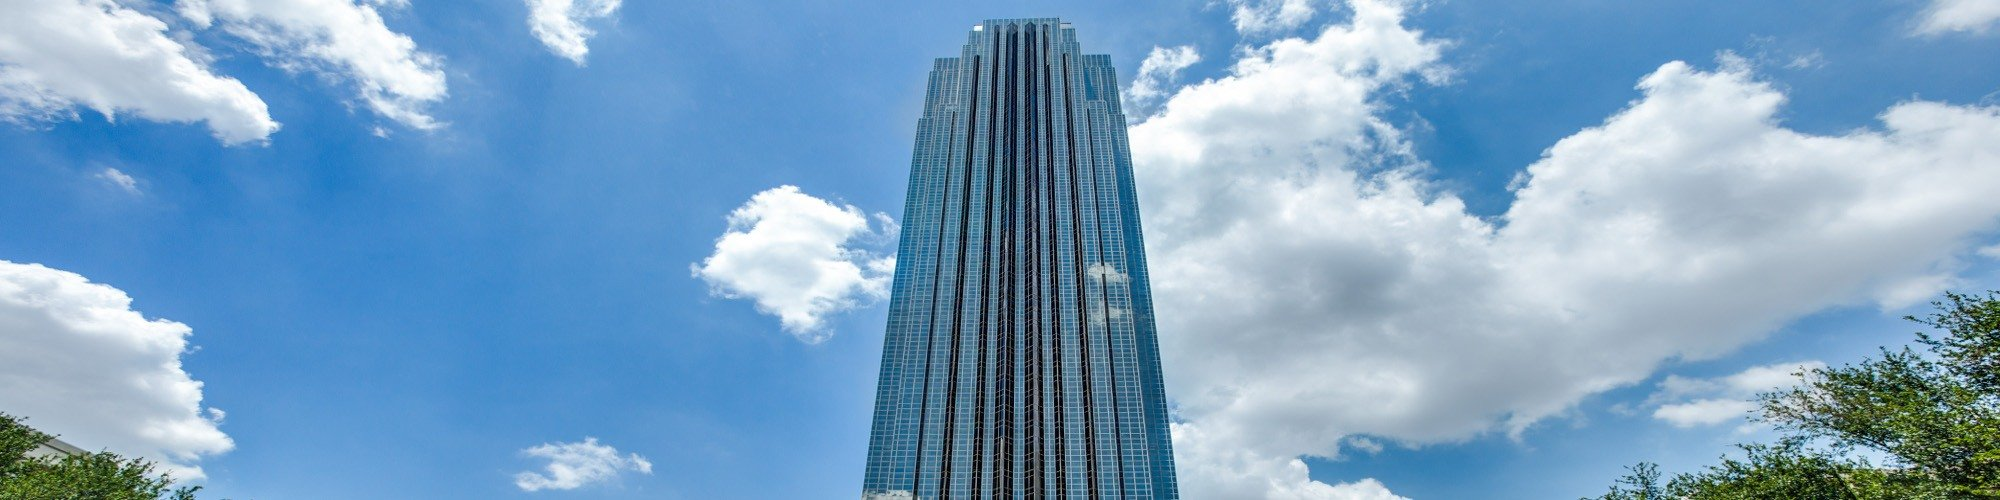 banner-williams-tower-houston-building.jpg